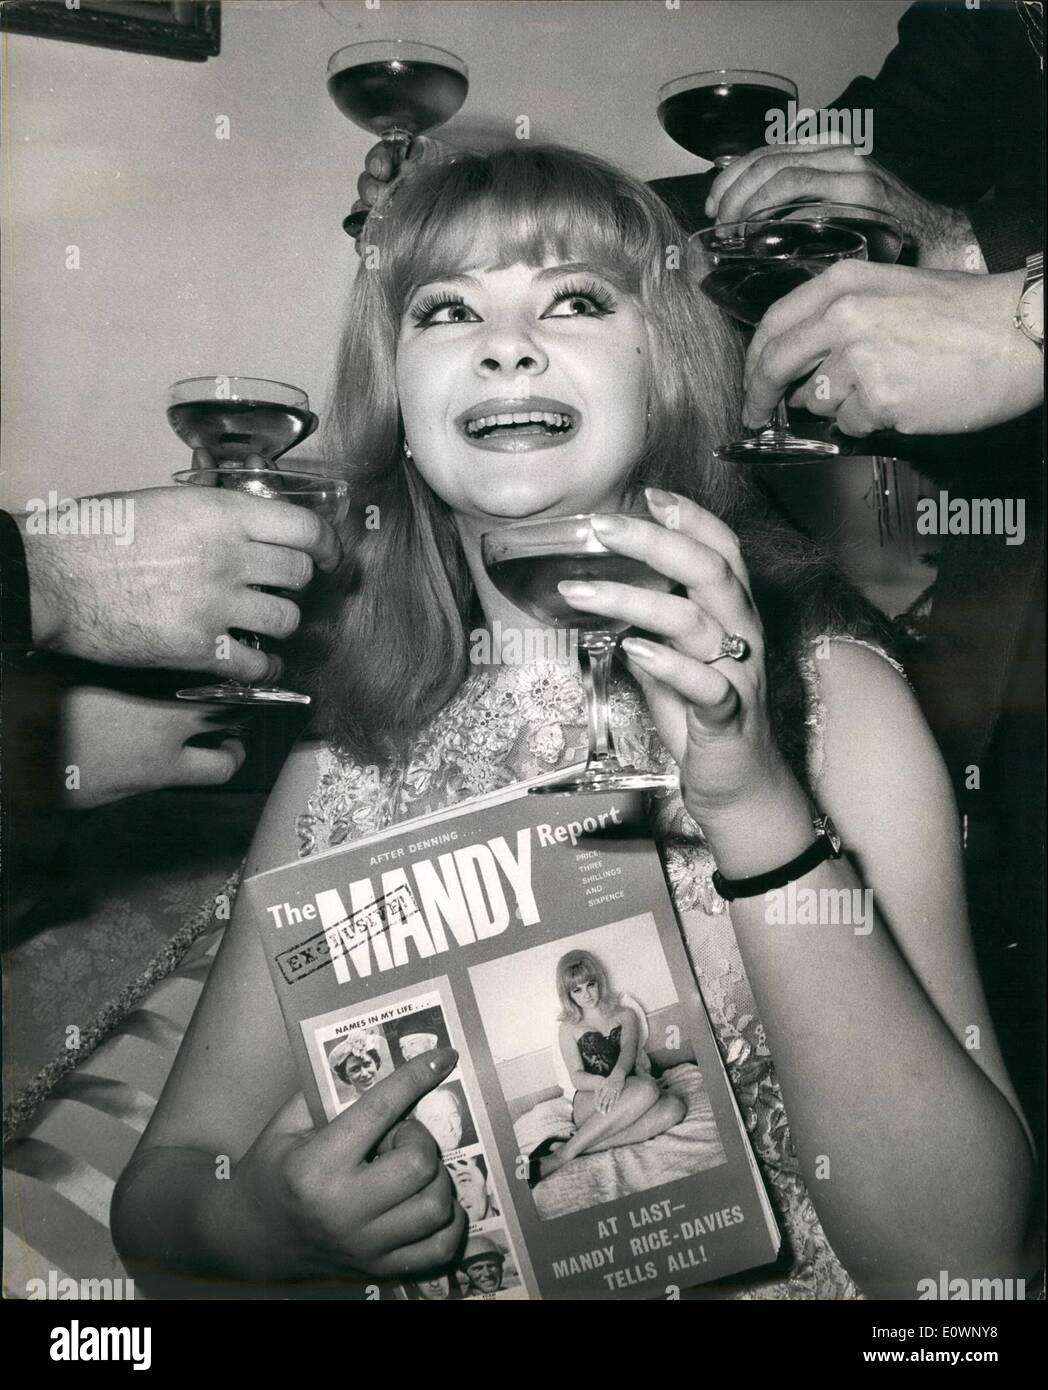 Jan. 01, 1964 - Mandy holds a party: To launch her book the ''Mandy Report'' which is published today, good time girl Mandy Rice - Davies held a party at her Kensington flat. The report gives her version of the Keeler - Profumo affair. Mandy said that she had invited Lord Astor, Lord Denning, Bob Hope and Douglas Fairbanks Jr. to the party, but only the press and her publishers turned up. Mandy was wearing the ring given to her by her former lover, property racketeer Peter Rachman who is now dead. Photo shows Mandy Rice-Davies at her party last night. - Stock Image